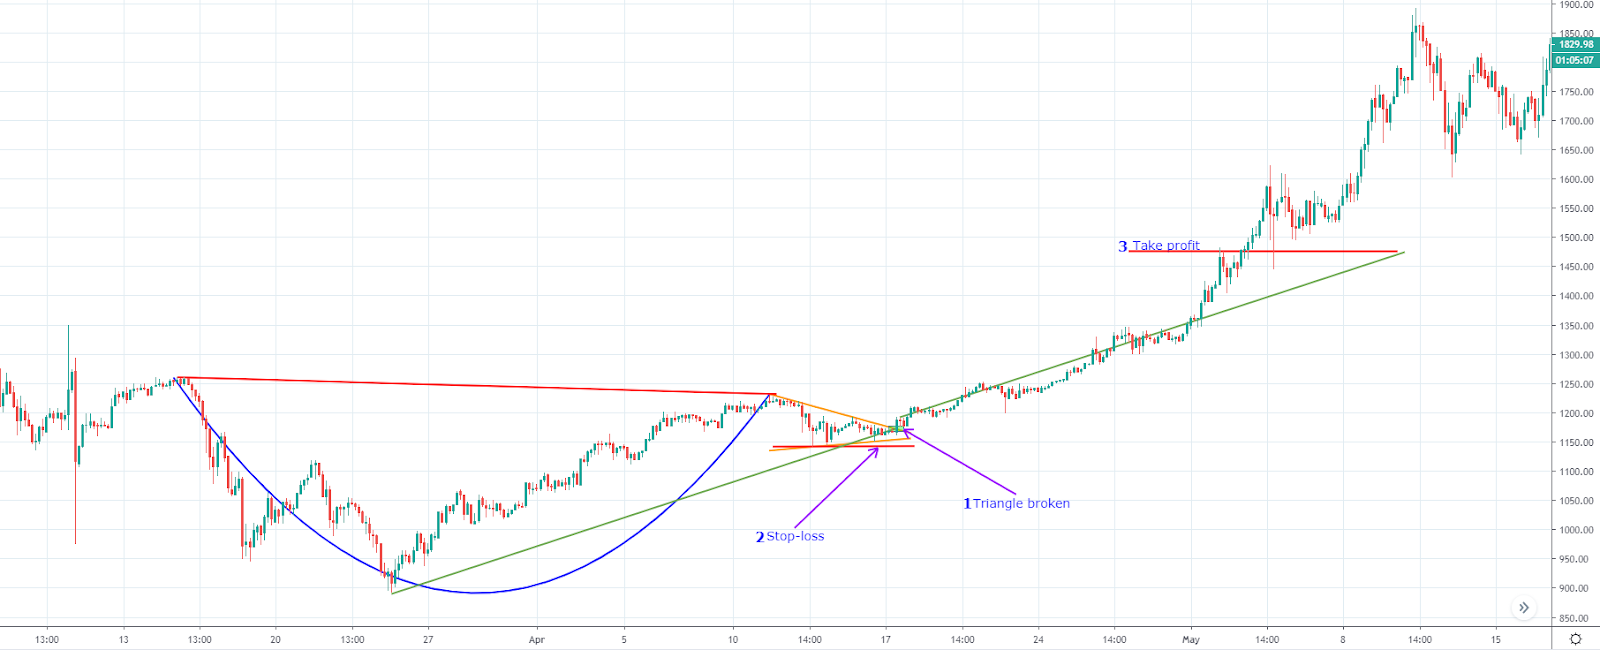 Trading cup and handle formation (Source: TradingView)